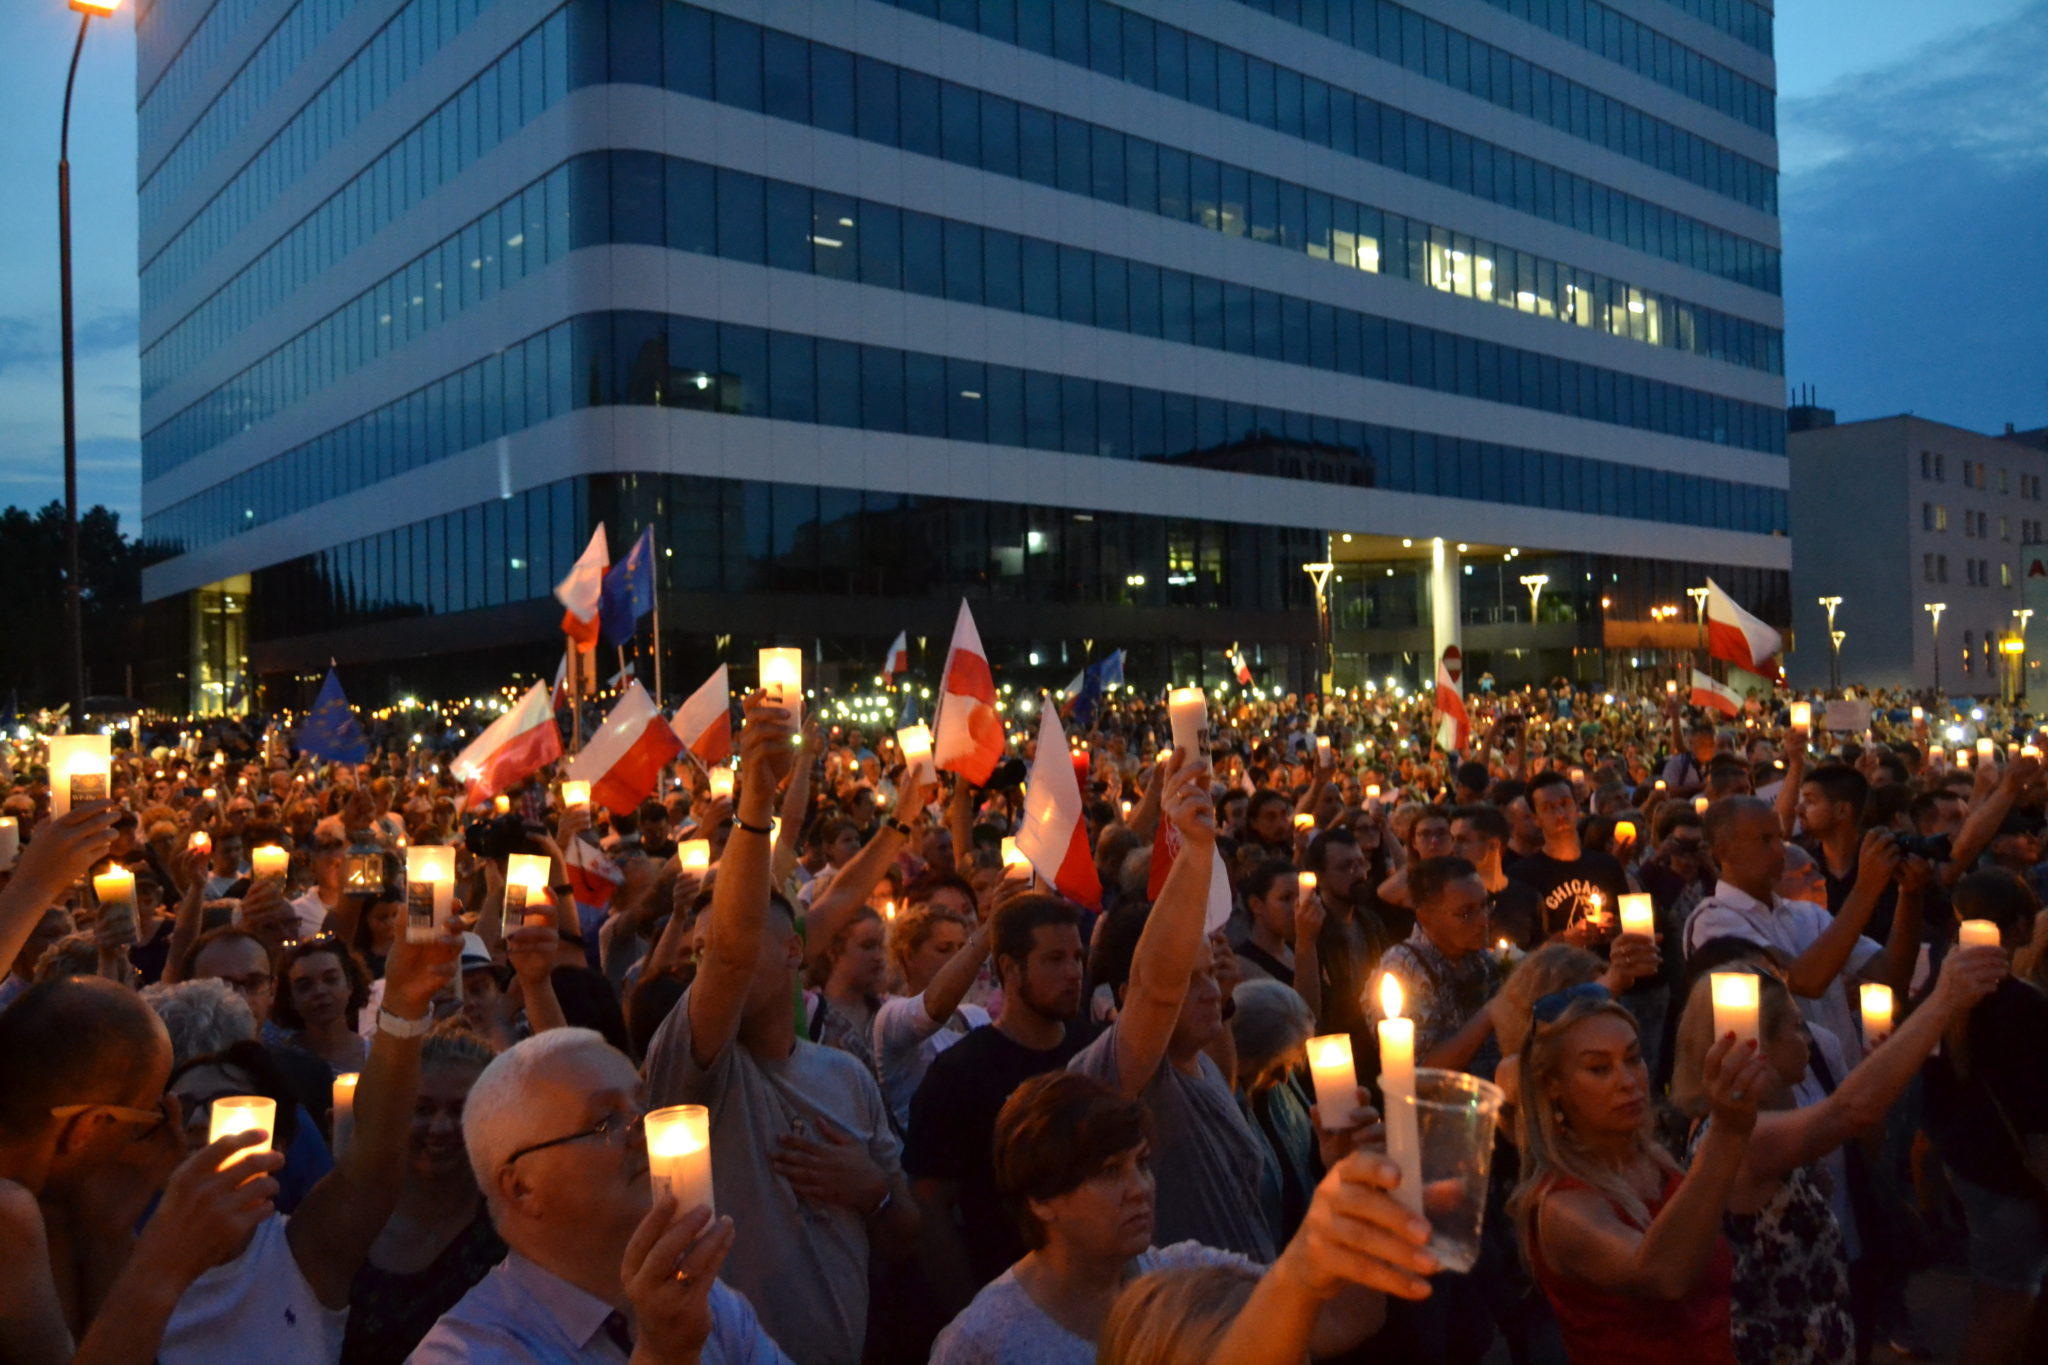 Demonstrators hold candles and flags in a silent moment of protest before the Polish court in Krakow Wednesday evening